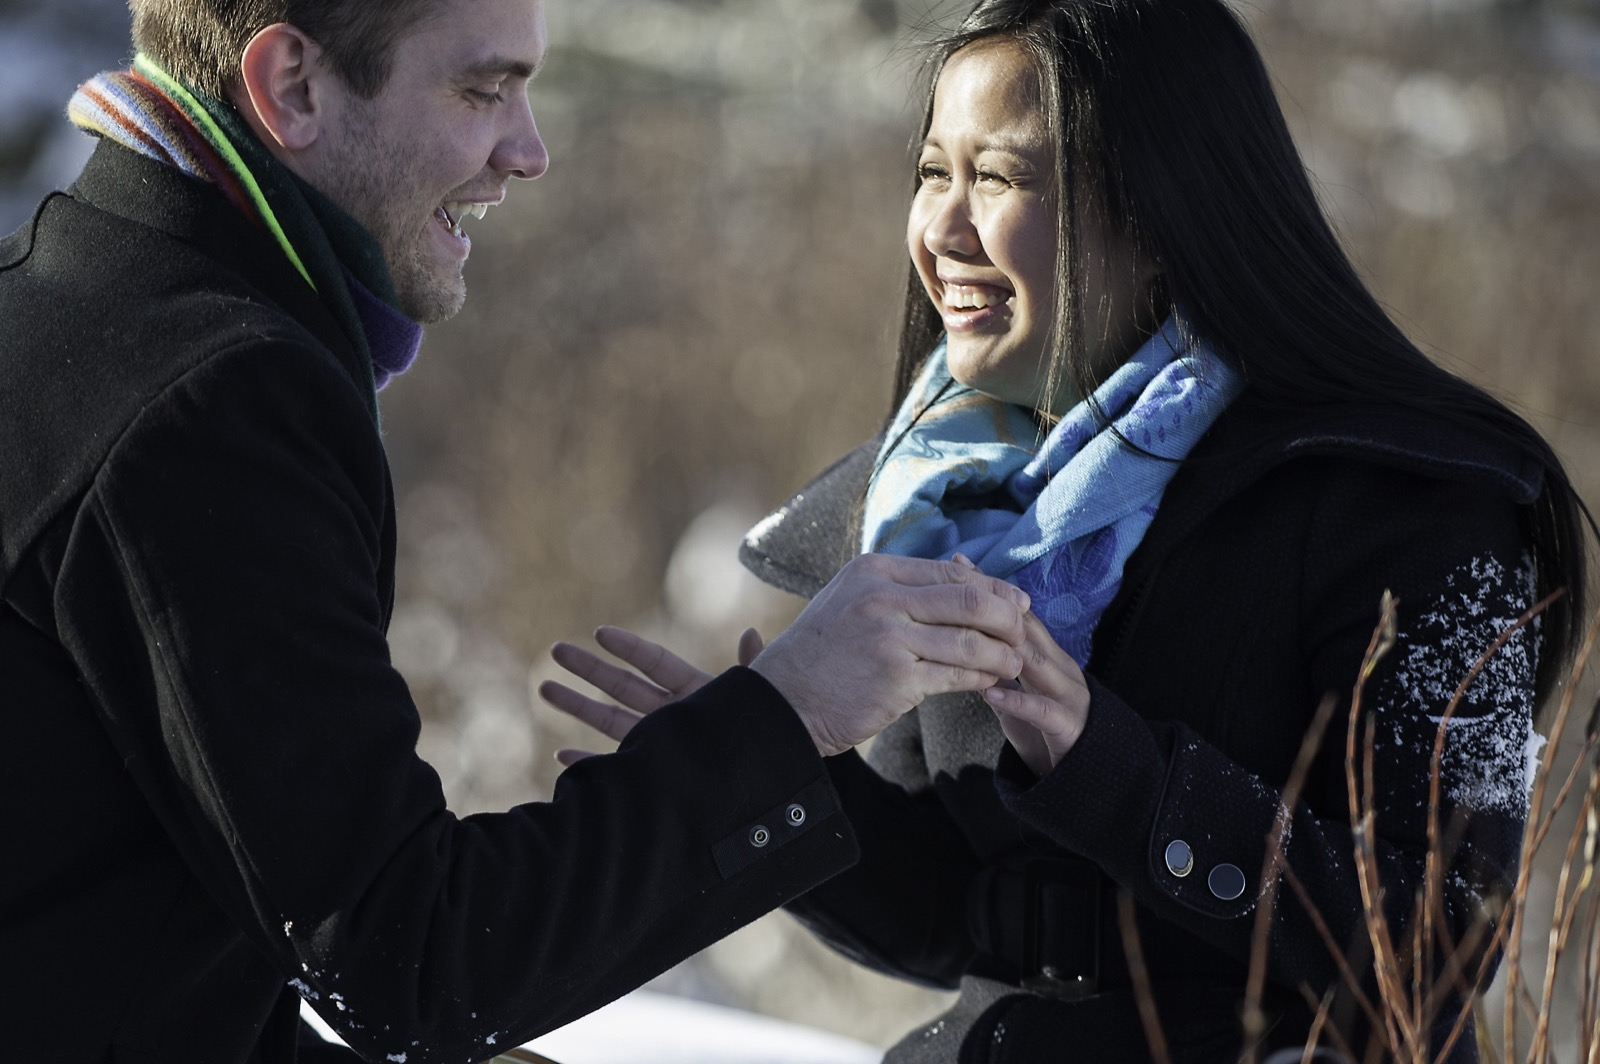 victoria-wedding-photographers-calgary-winter-engagement-proposal-17.jpg